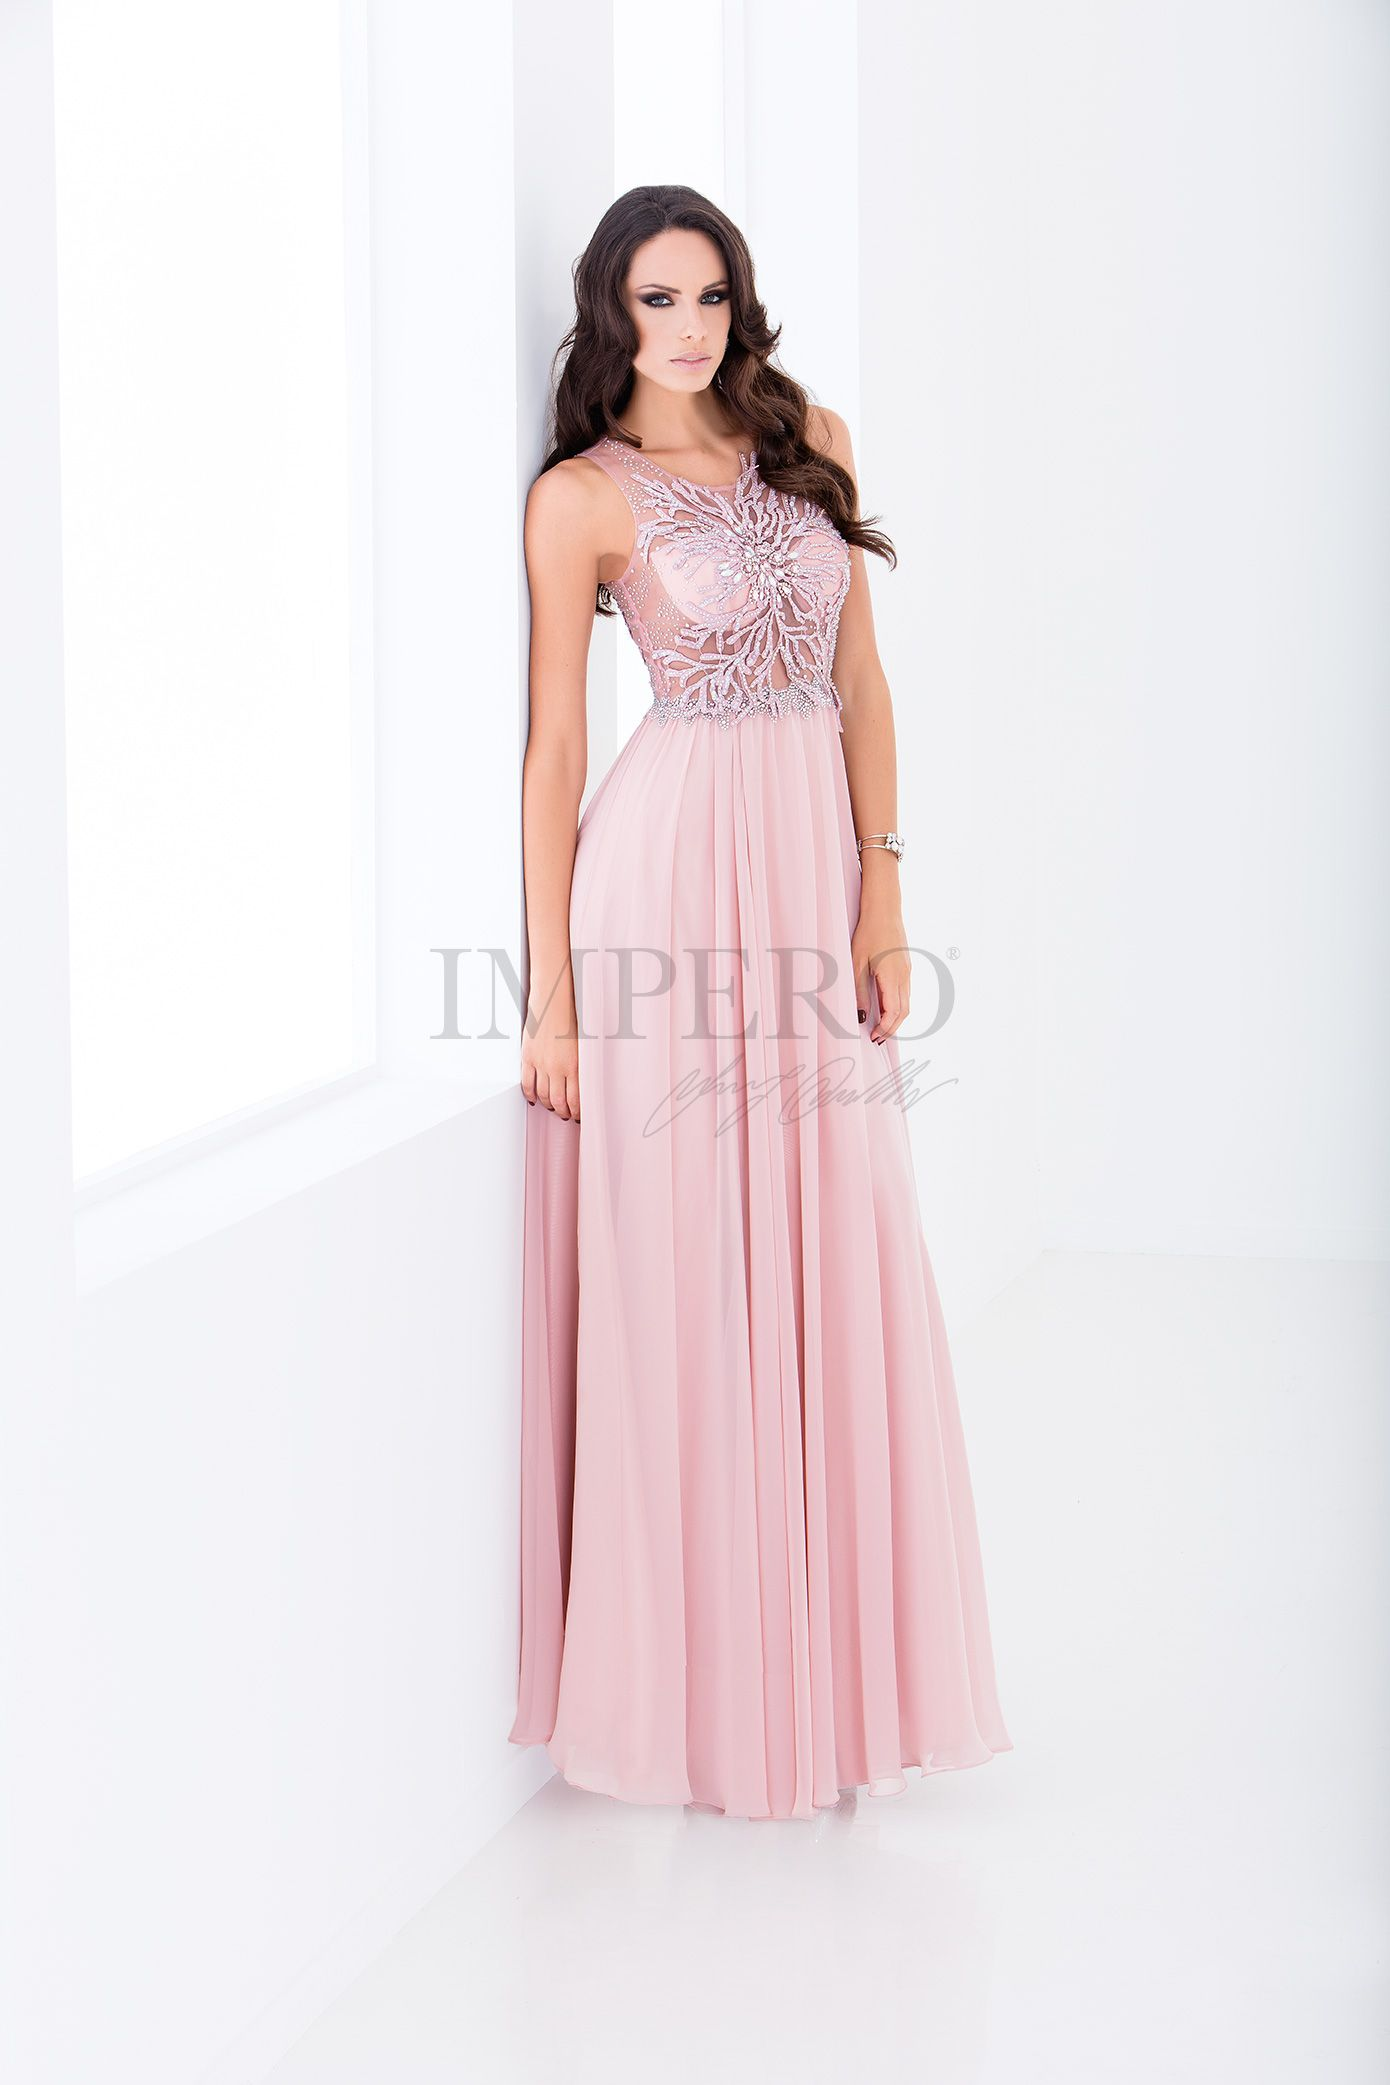 J 164-16 #abiti #dress #wedding #matrimonio #cerimonia #party #event ...